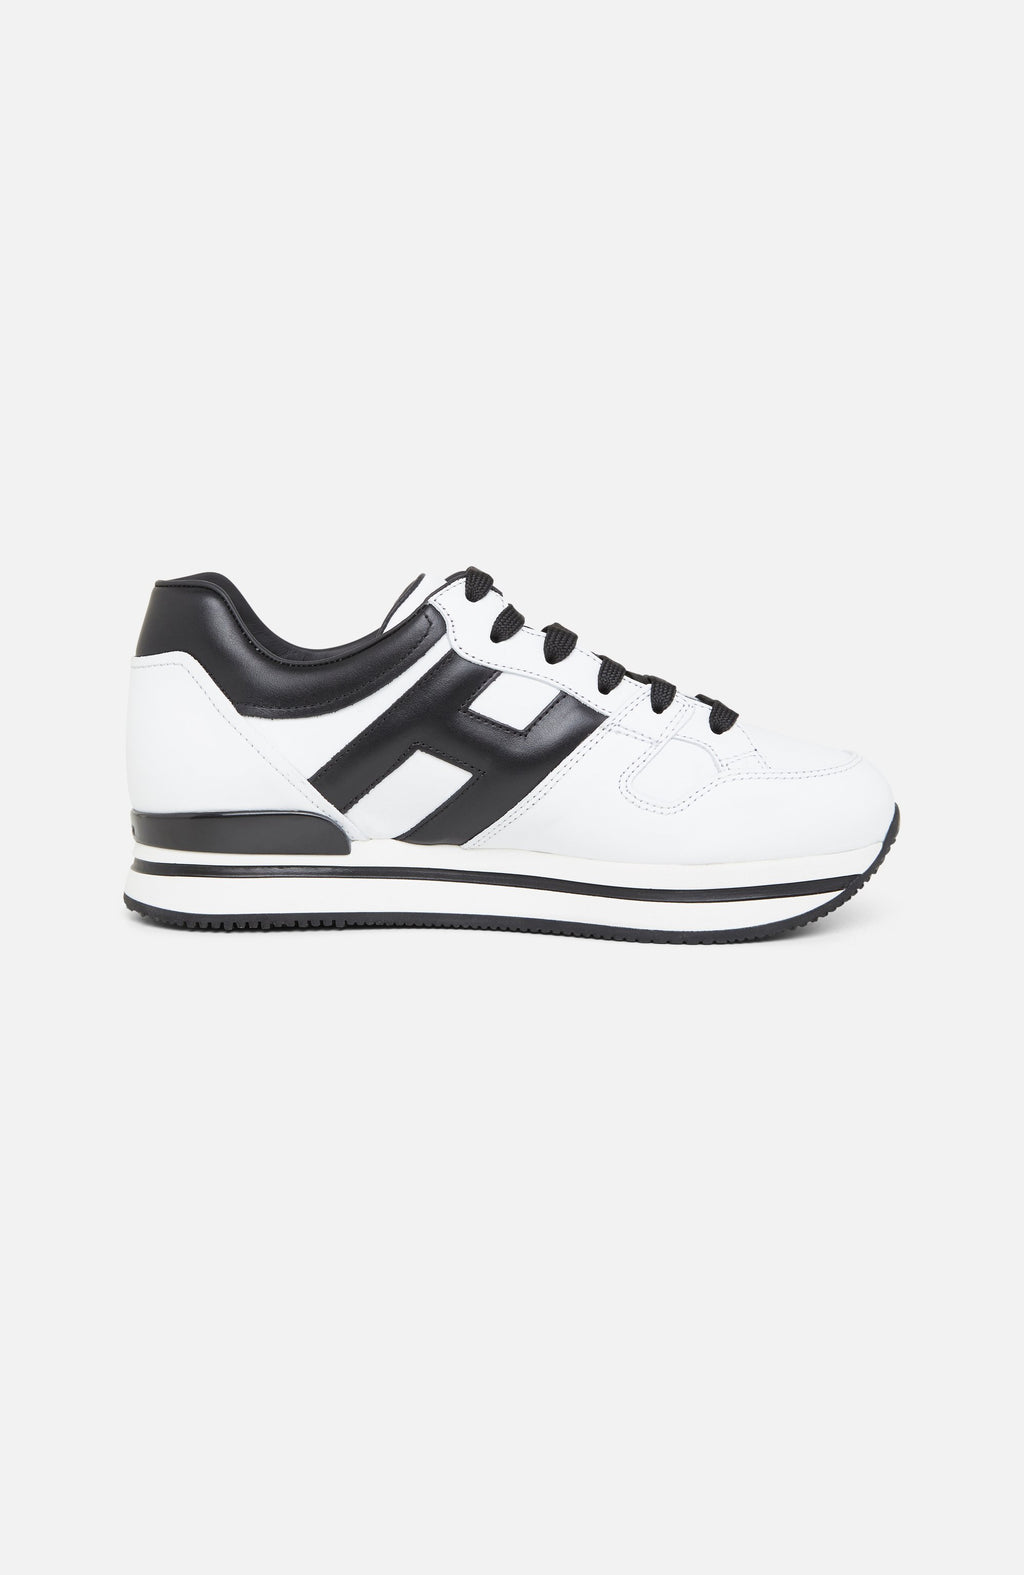 Hogan H222 Black and White Leather Sneakers